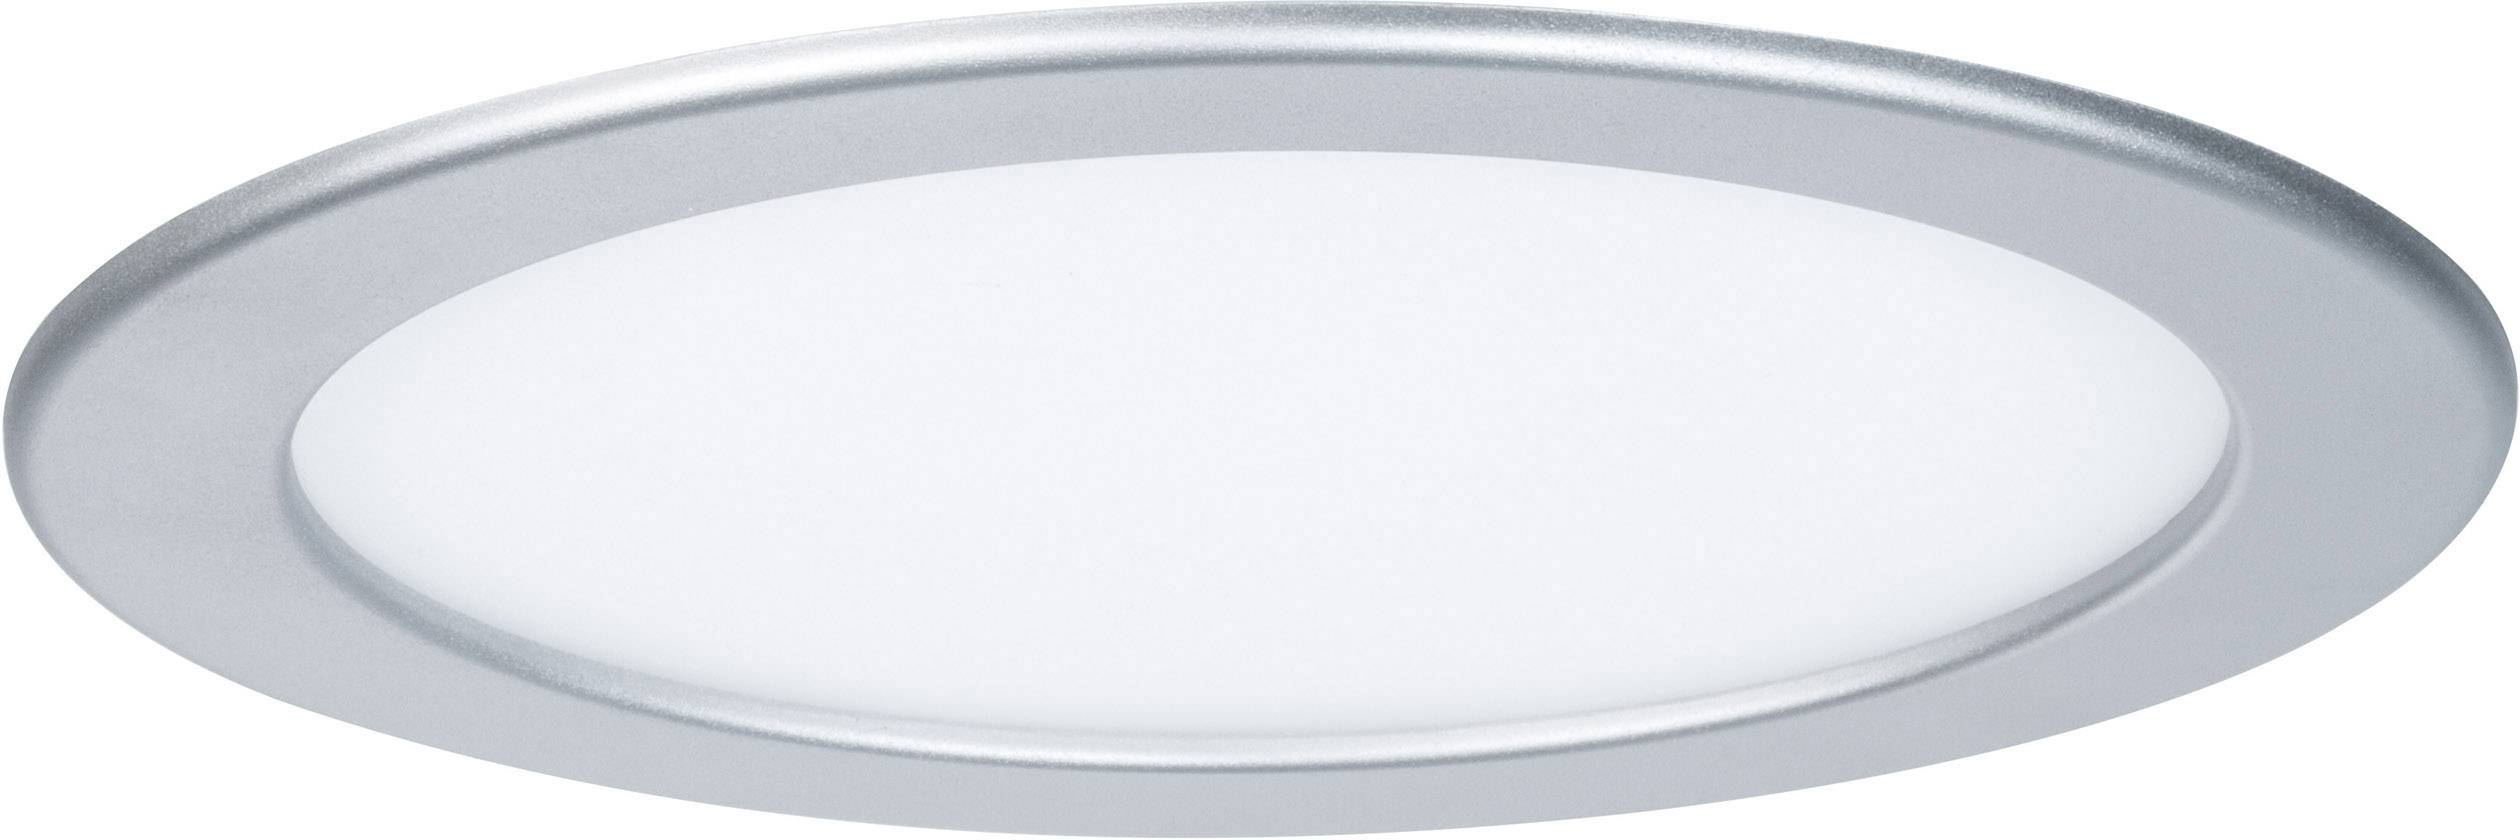 Spot encastrable ip65 led belle spot led encastrable for Spot pour salle de bain etanche